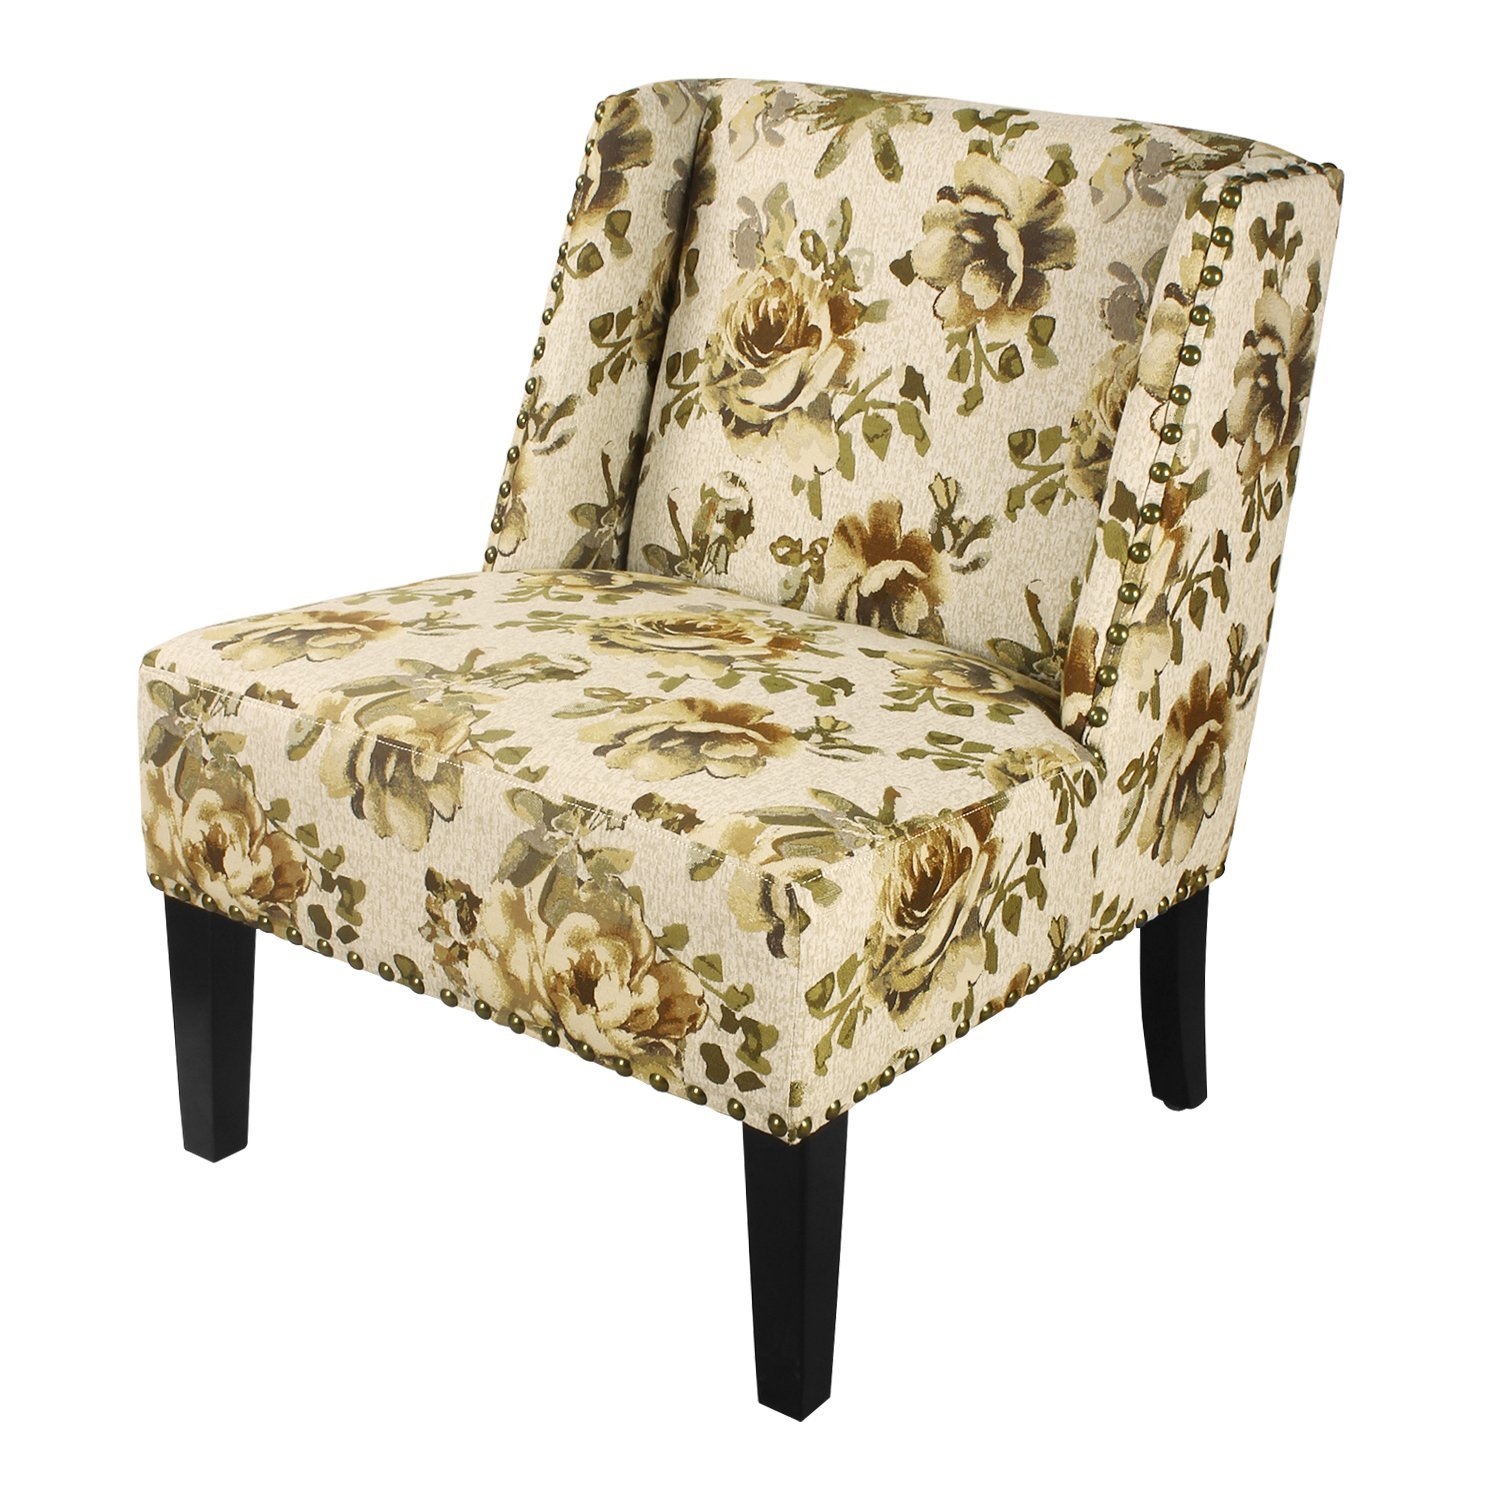 Asense Nailhead Floral Print Geometry Print 31 Inch Armless Wood Leg Accent Chair (Green Floral Print)